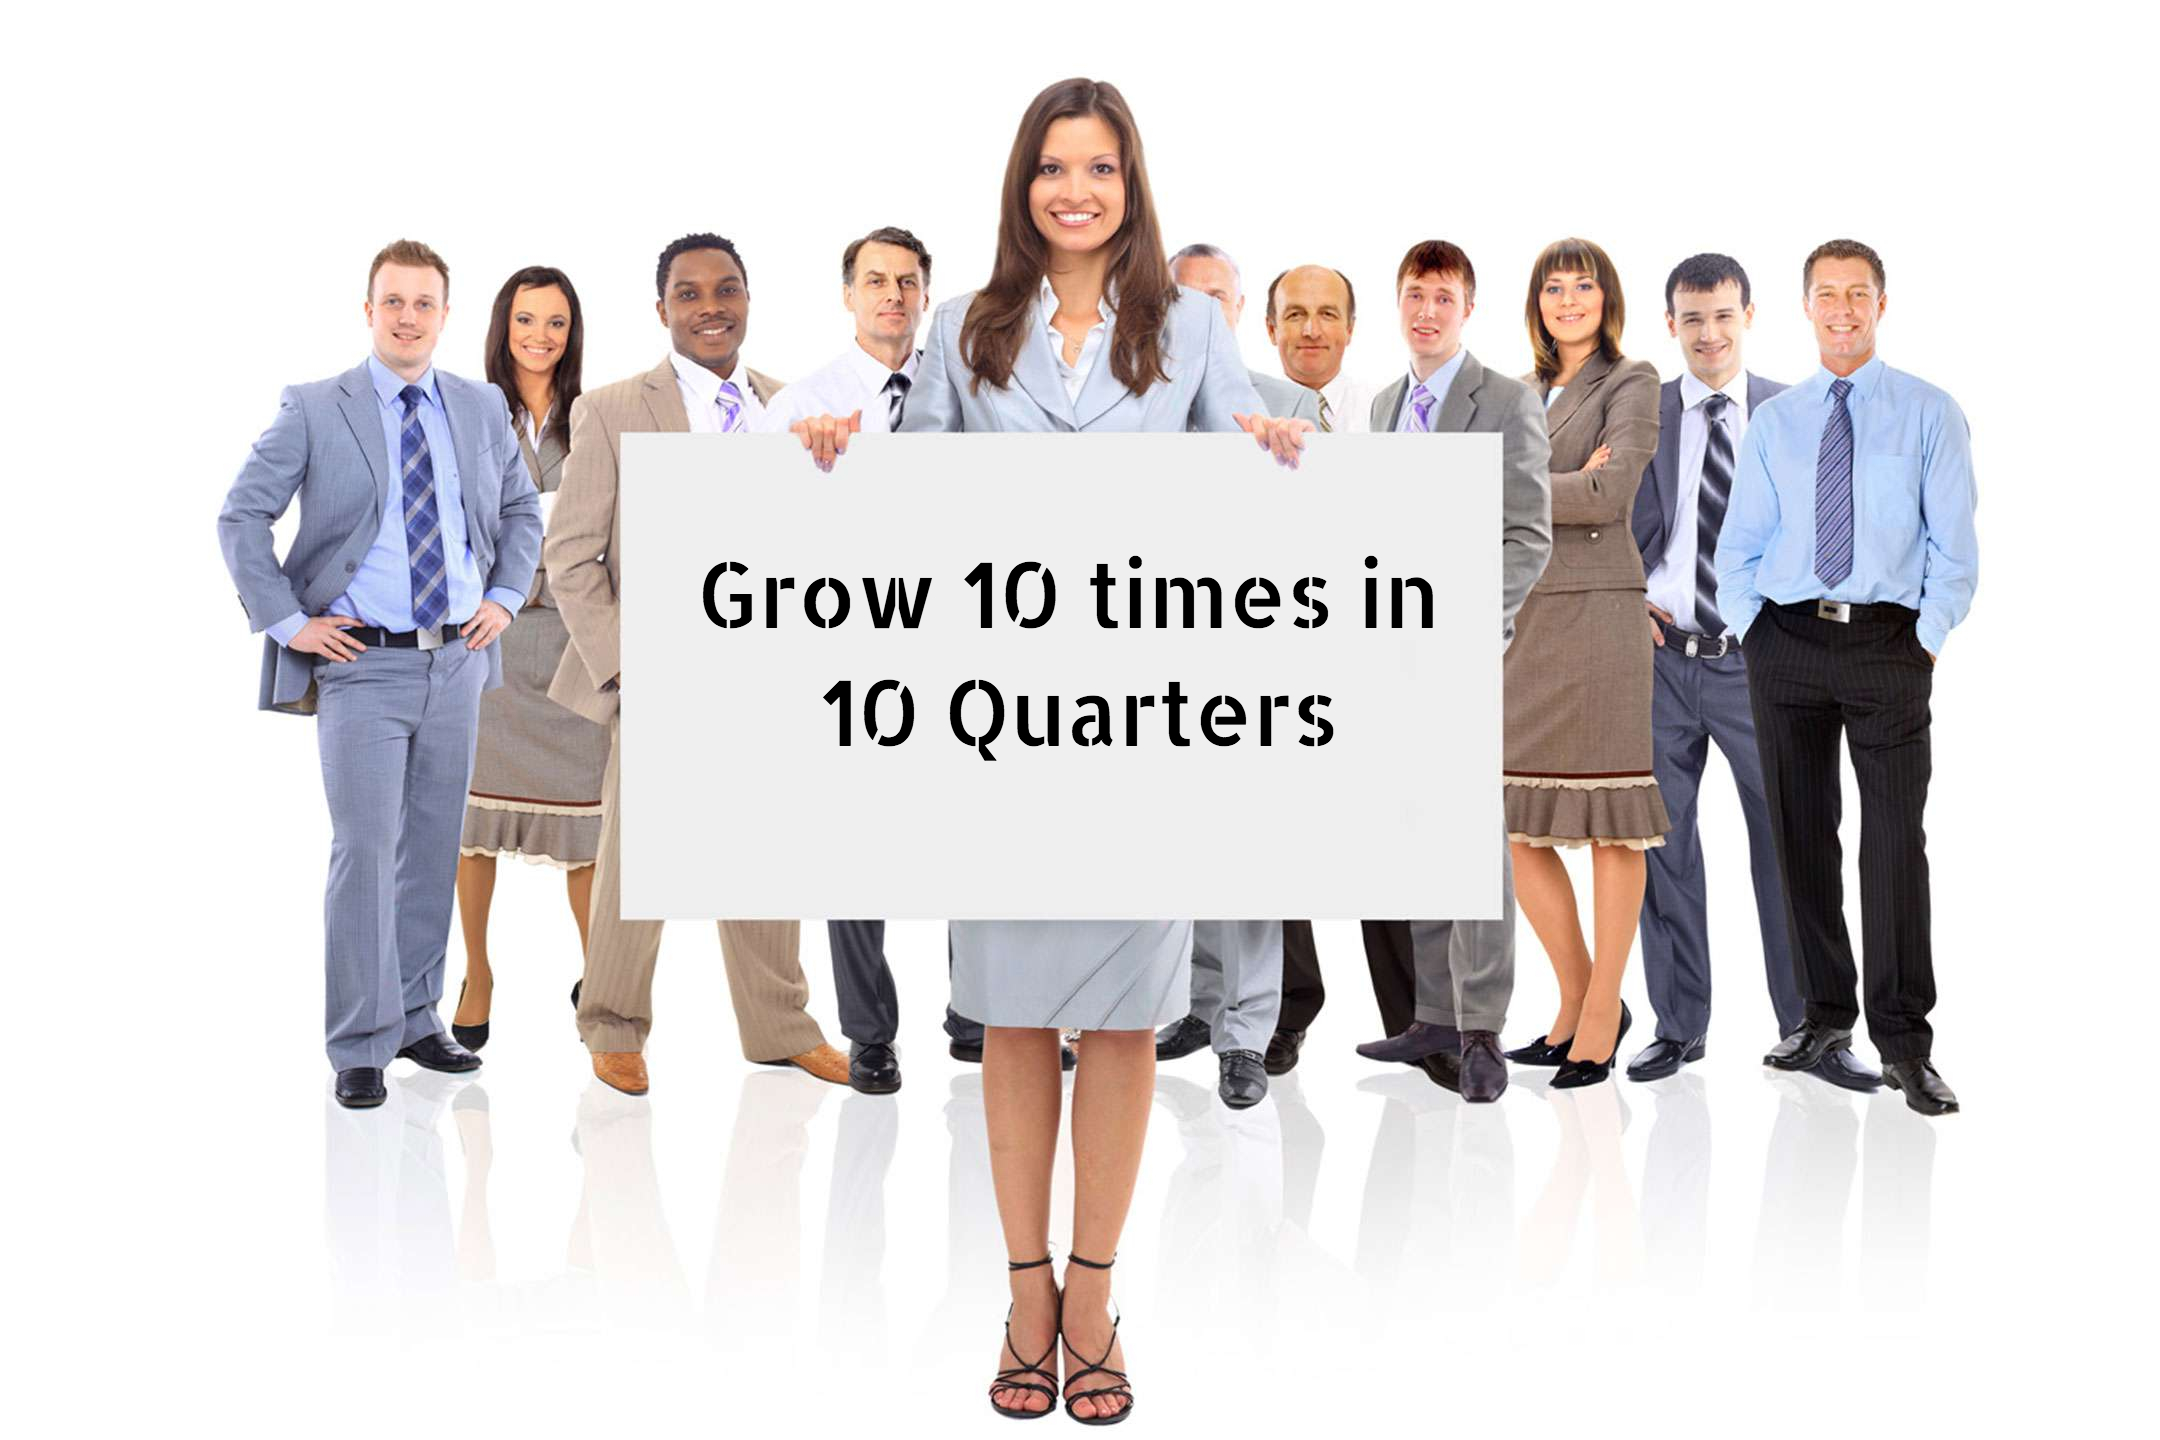 Grow 10 times in 10 quarters